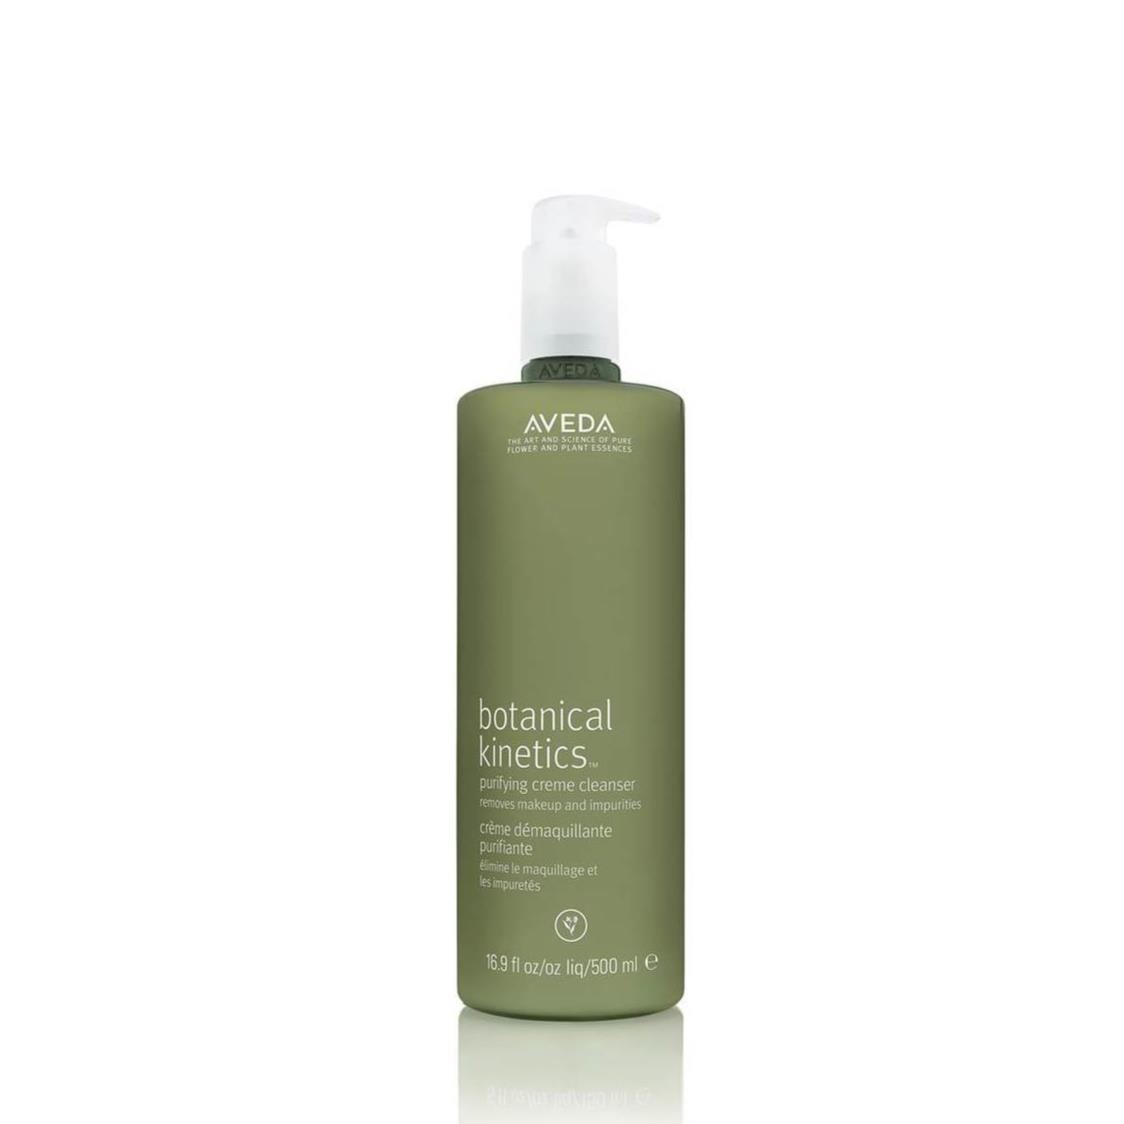 Botanical Kinetics Cream Cleanser